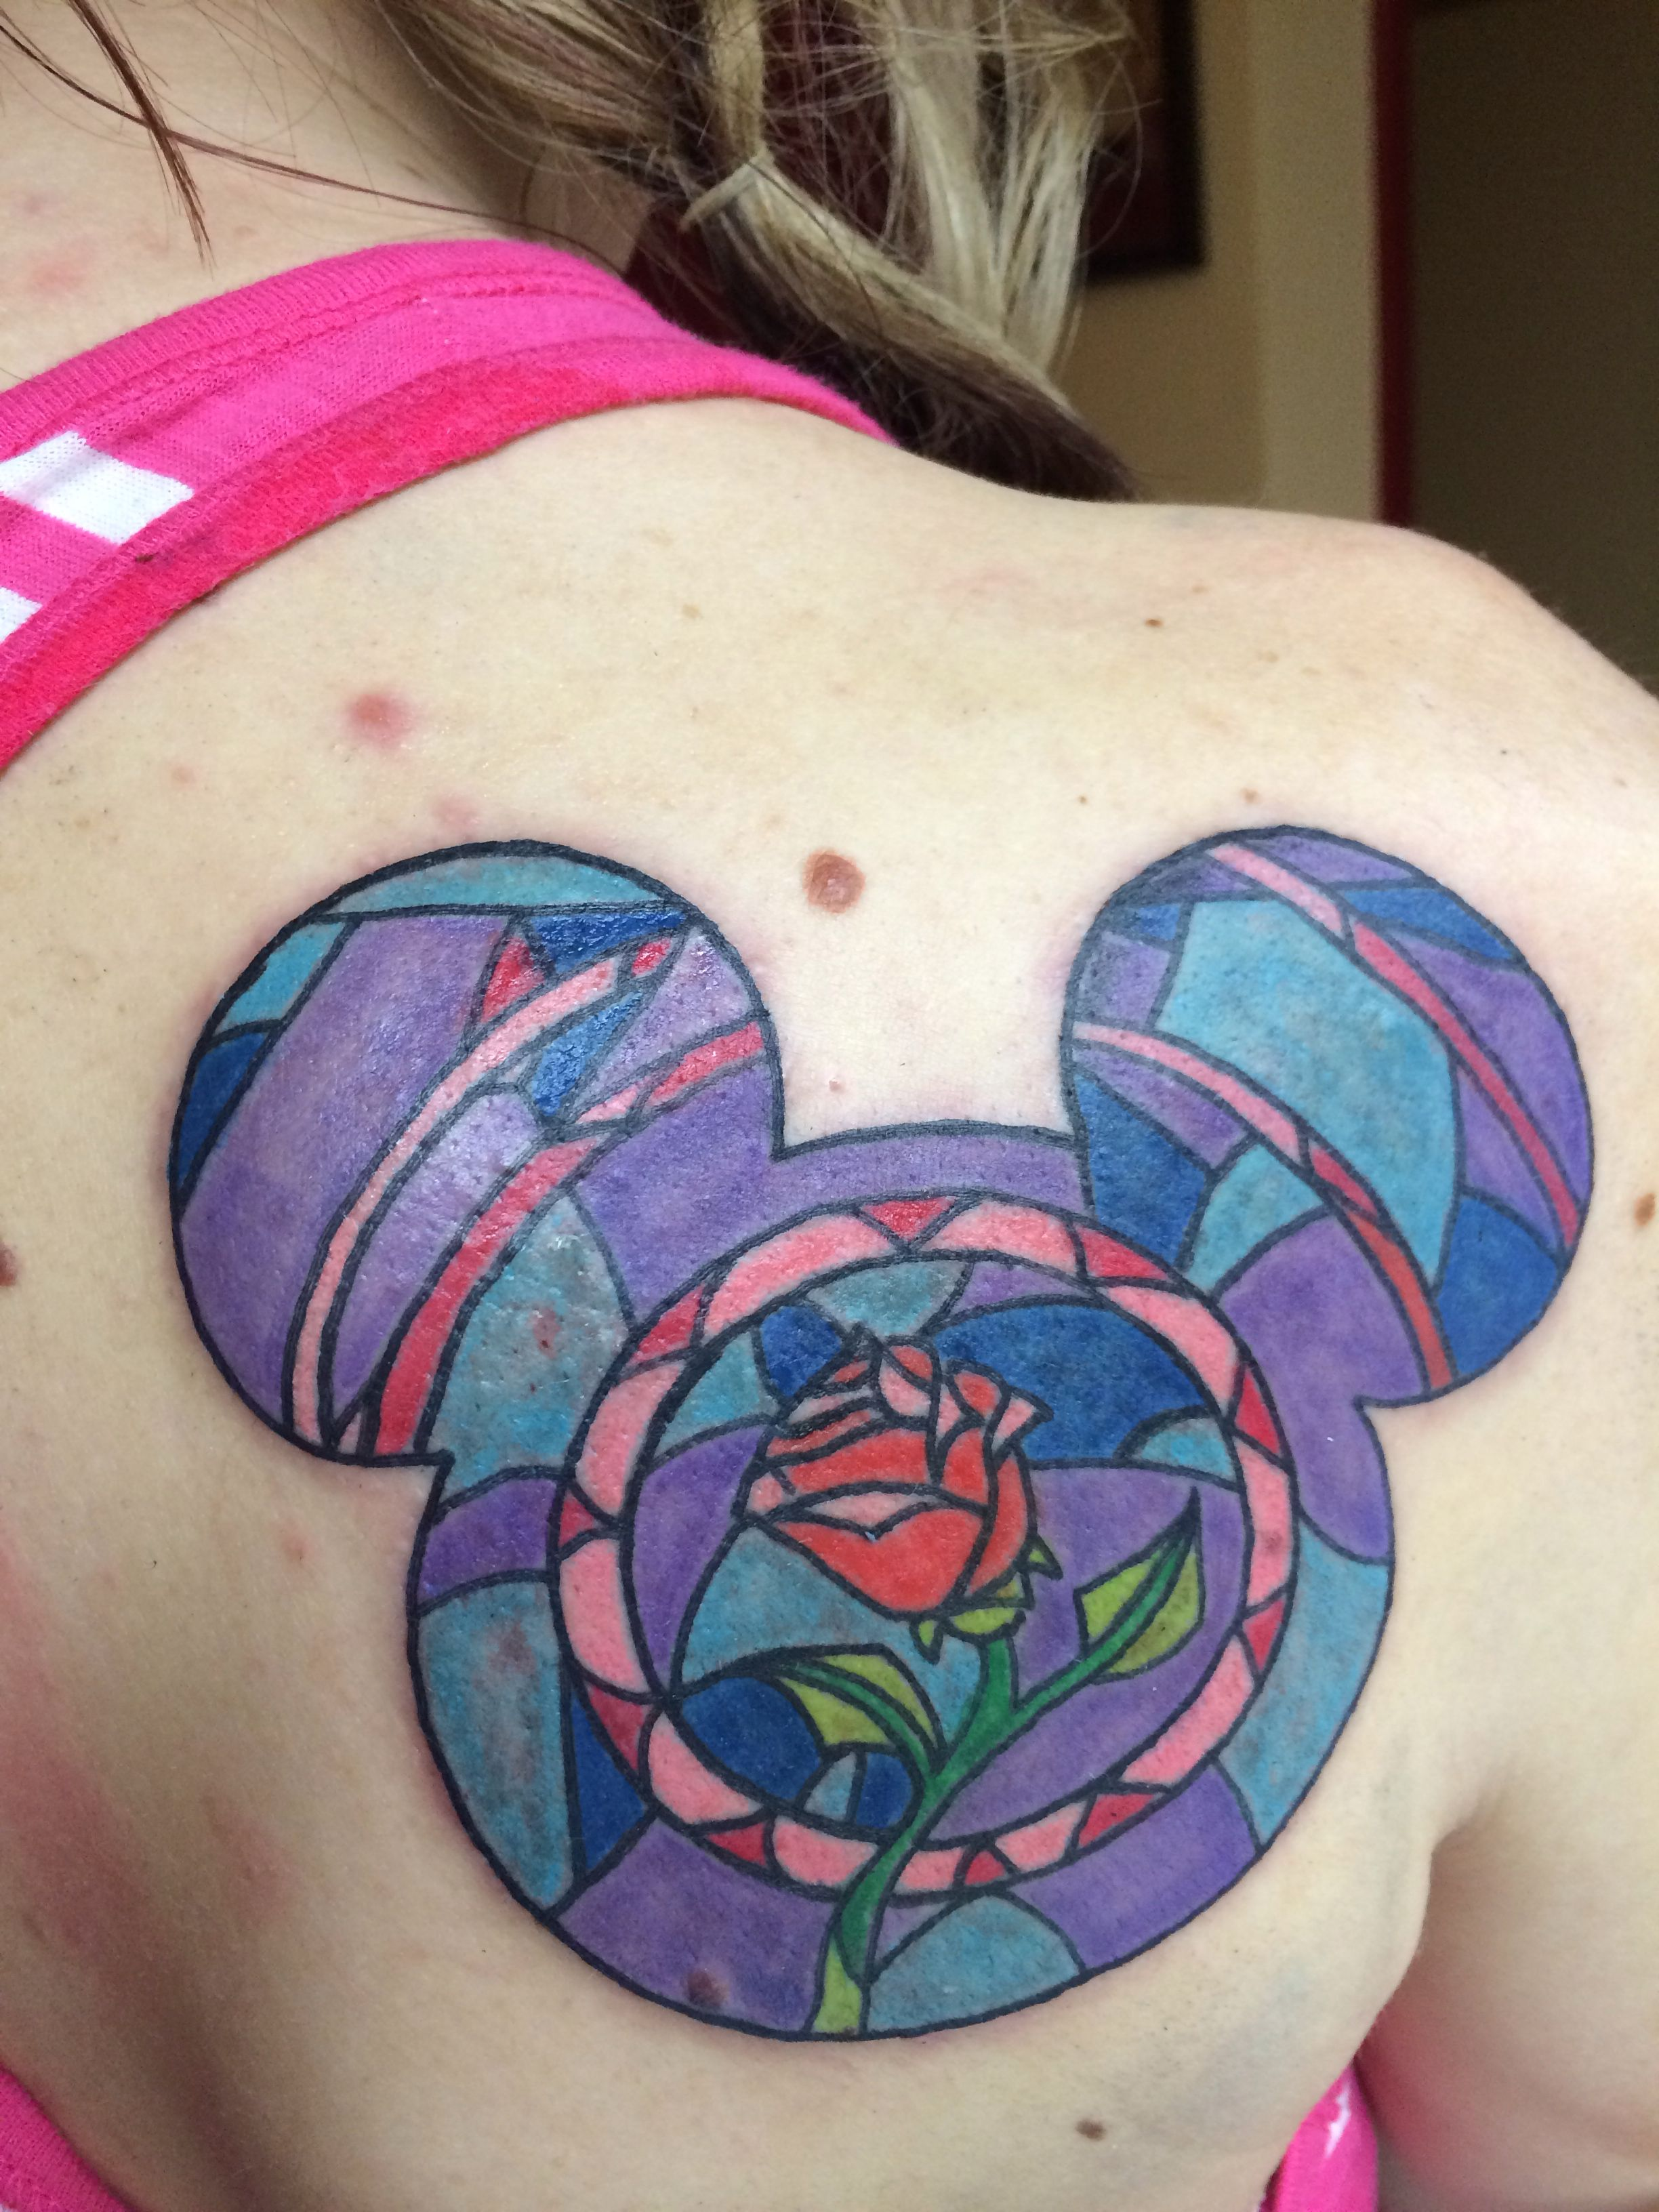 beauty and the beast rose tattoo disney tattoos pinterest tattoo tatting and piercings. Black Bedroom Furniture Sets. Home Design Ideas